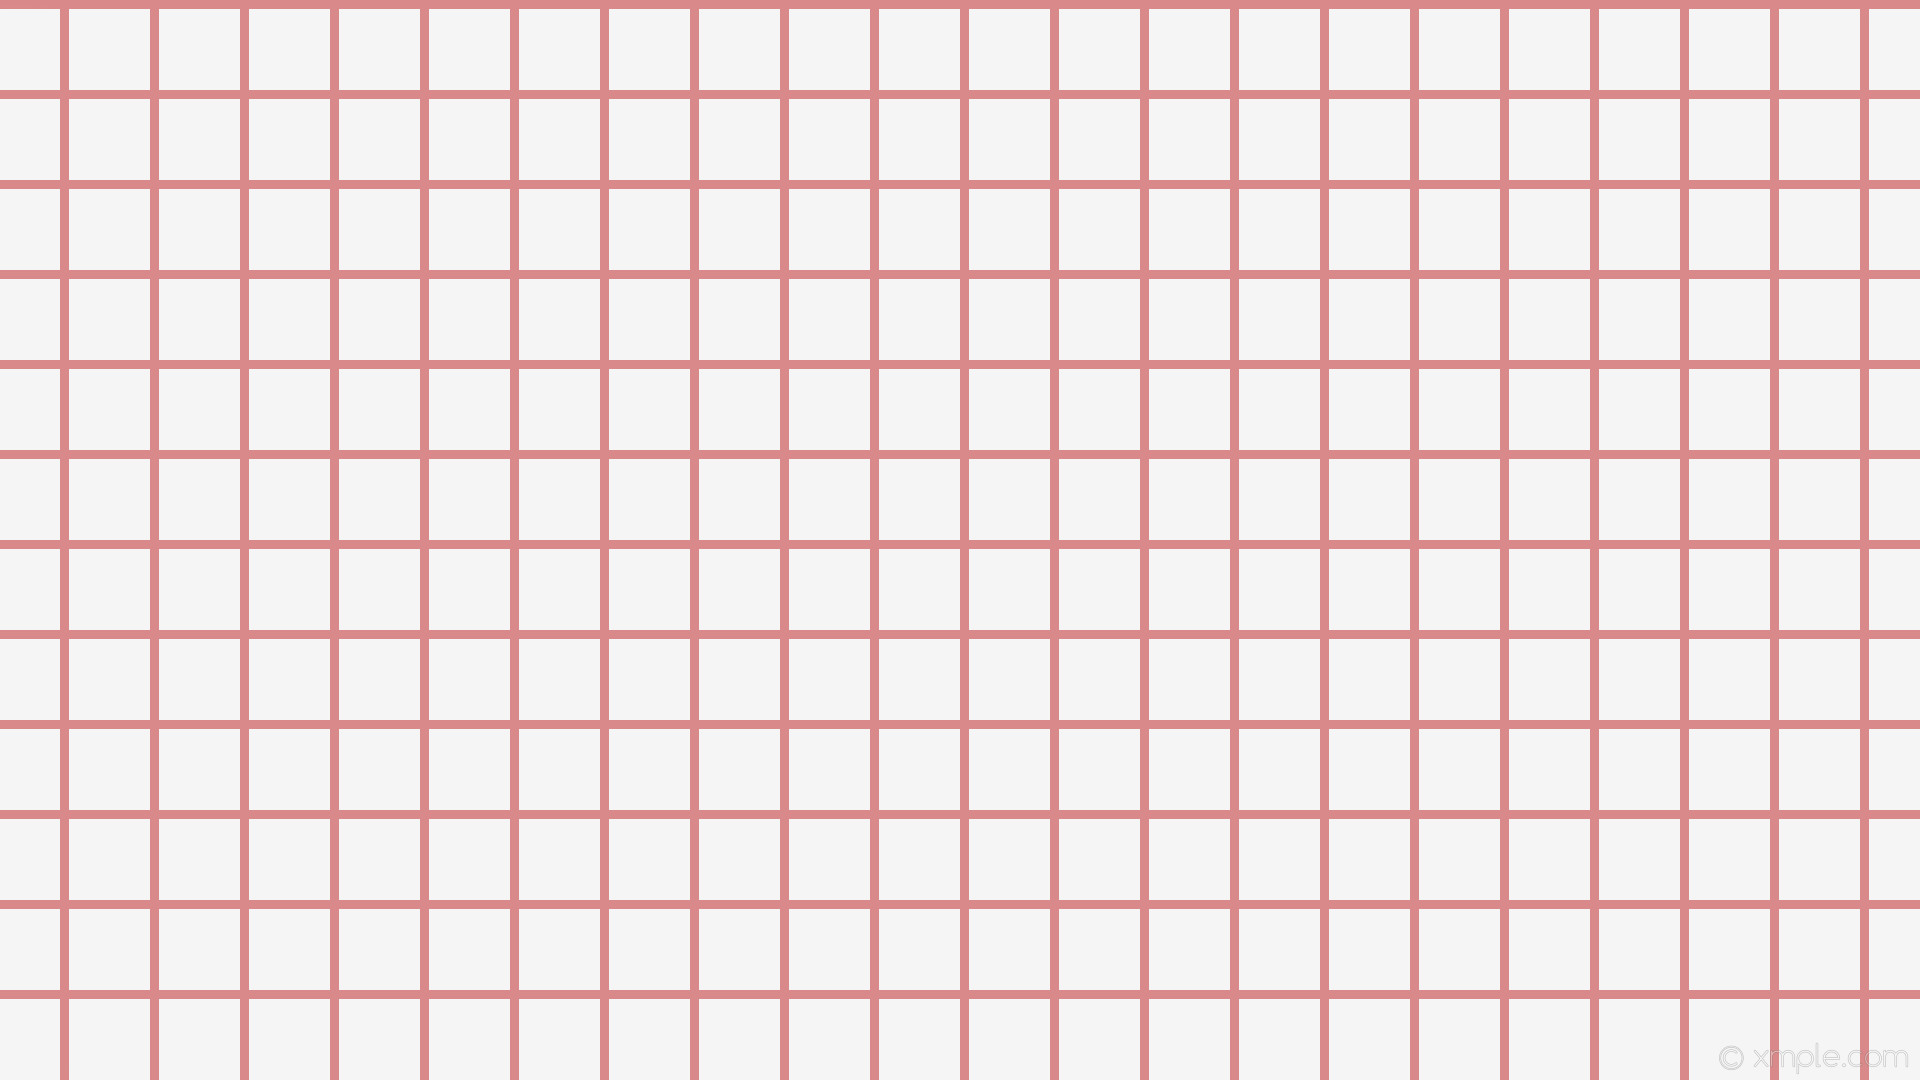 1920x1080 wallpaper graph paper grid red white white smoke indian red #f5f5f5 #cd5c5c  0°